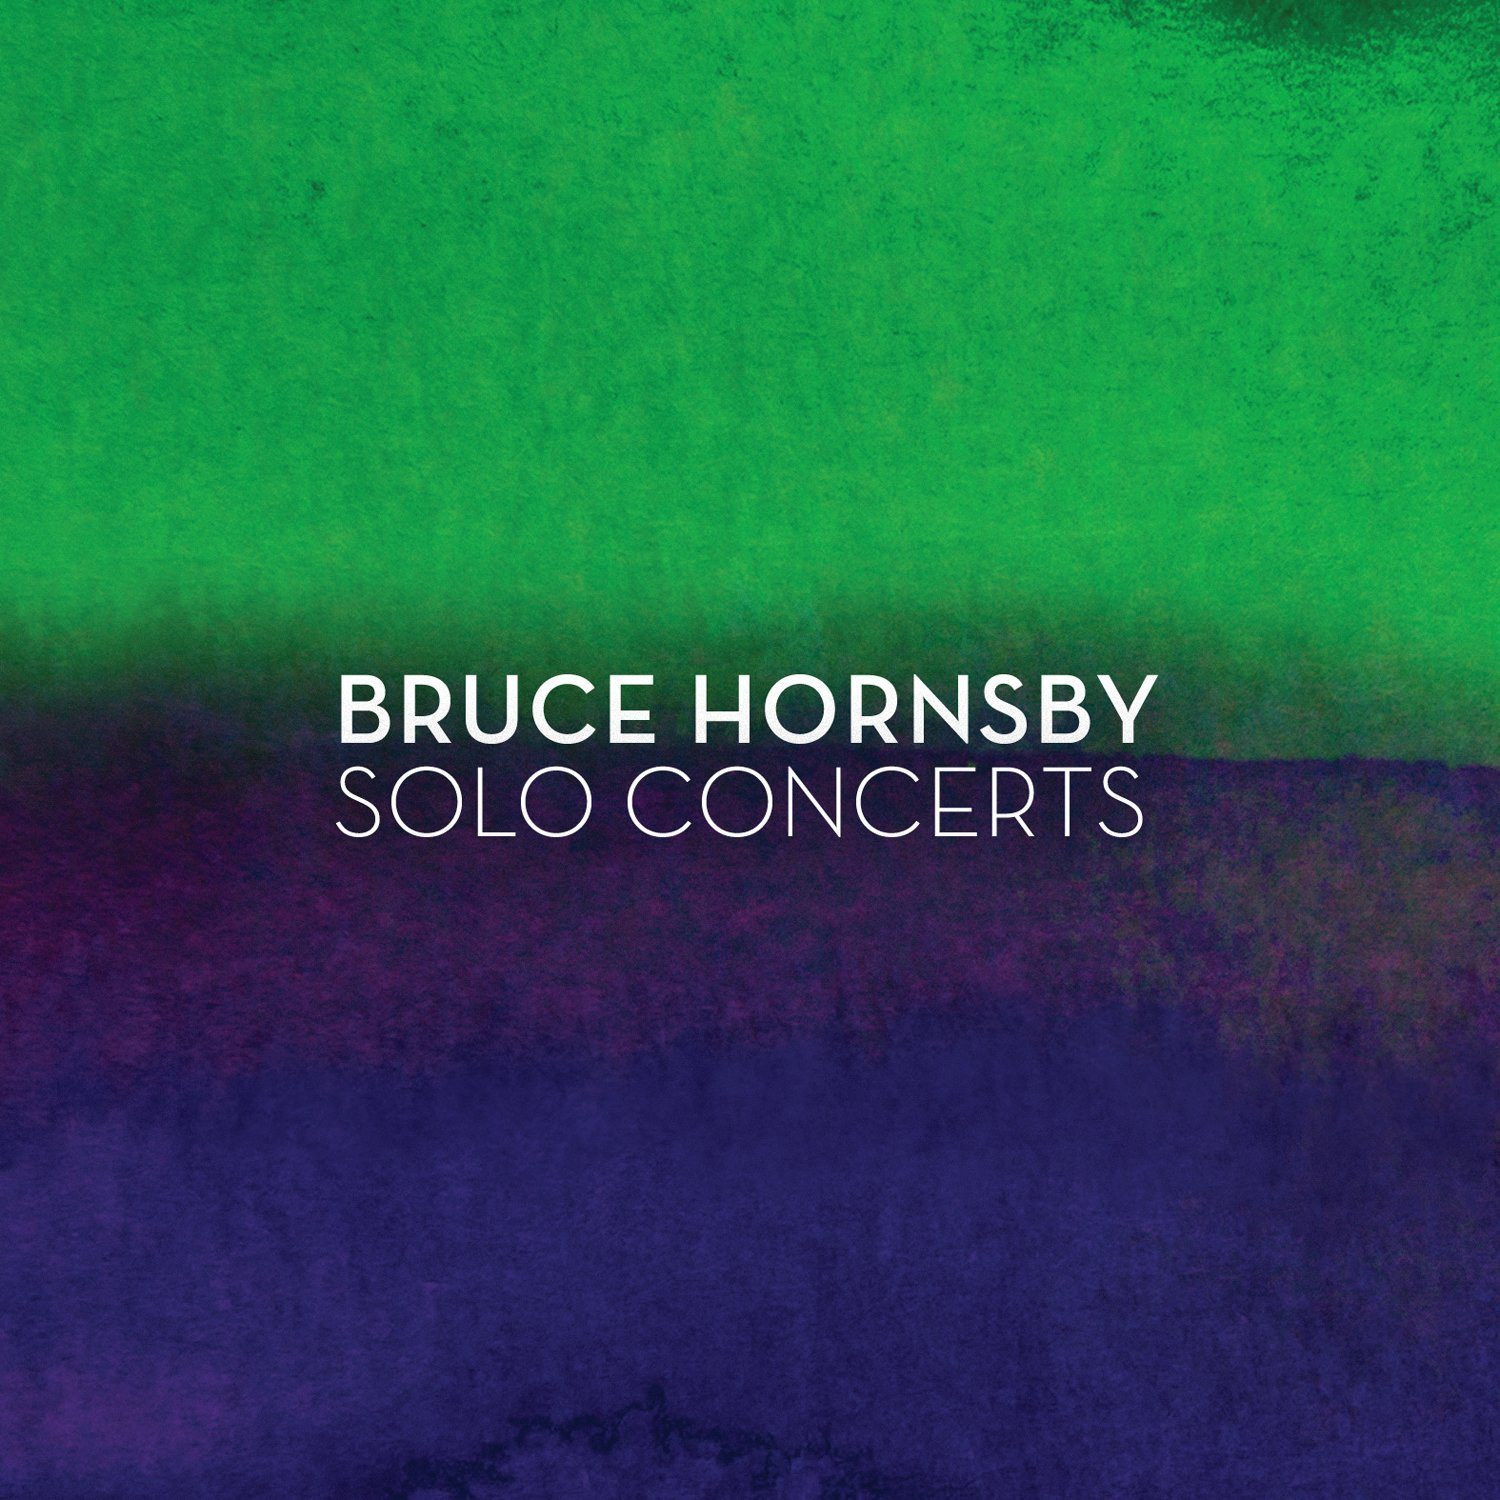 Bruce Hornsby - Solo Concerts